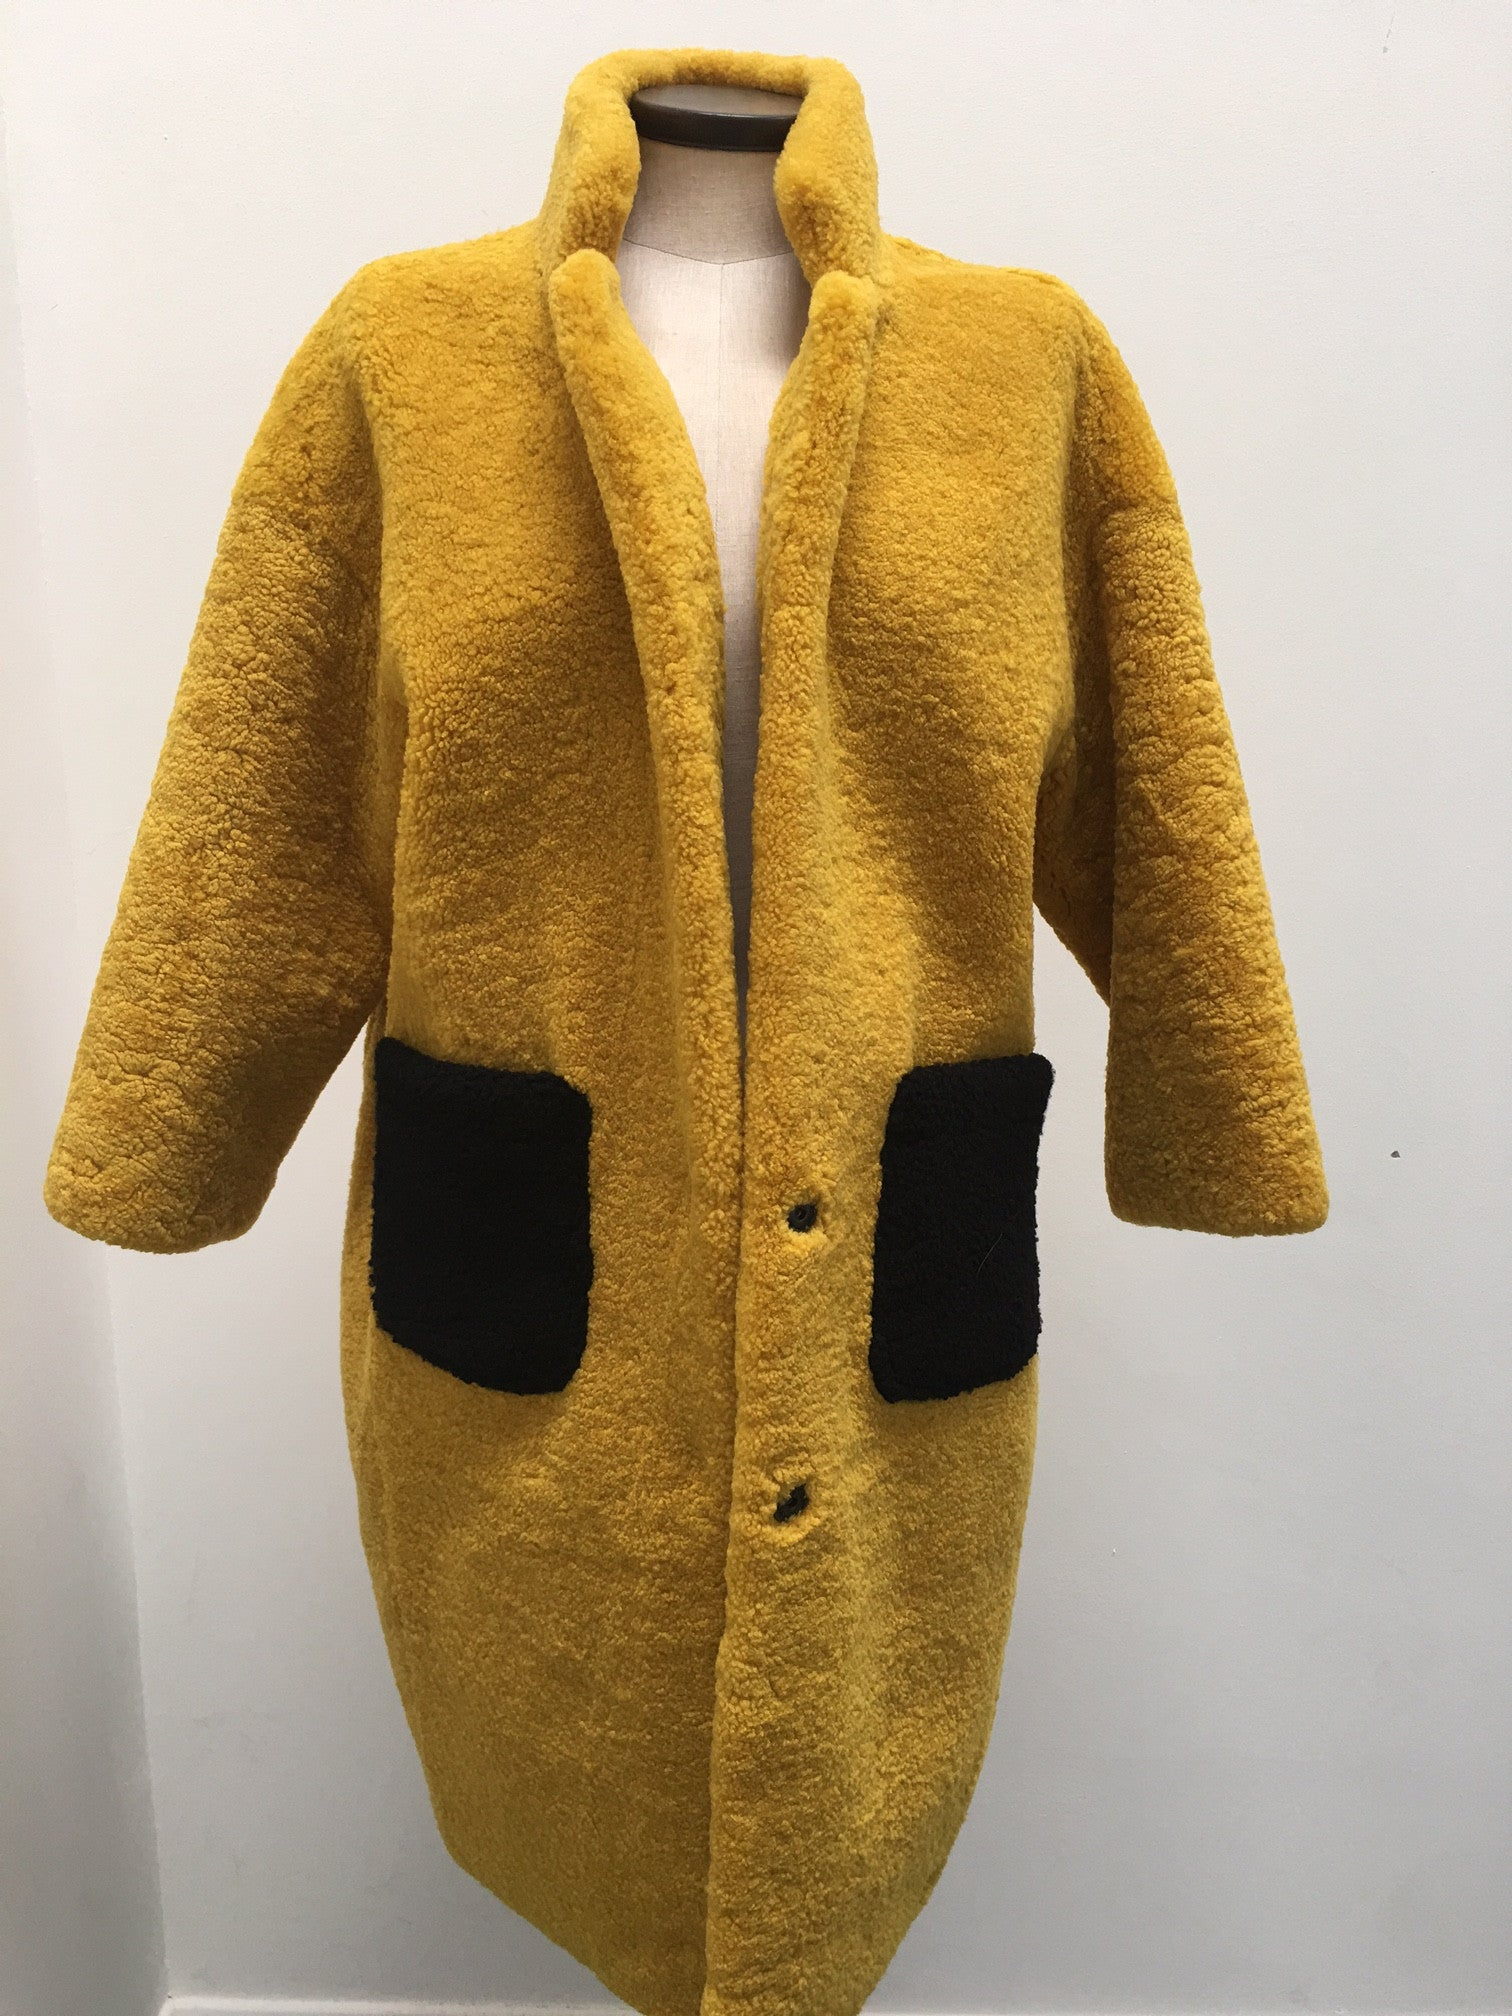 x Mustard Shearling Coat with Patch Pockets - The Soho Furrier